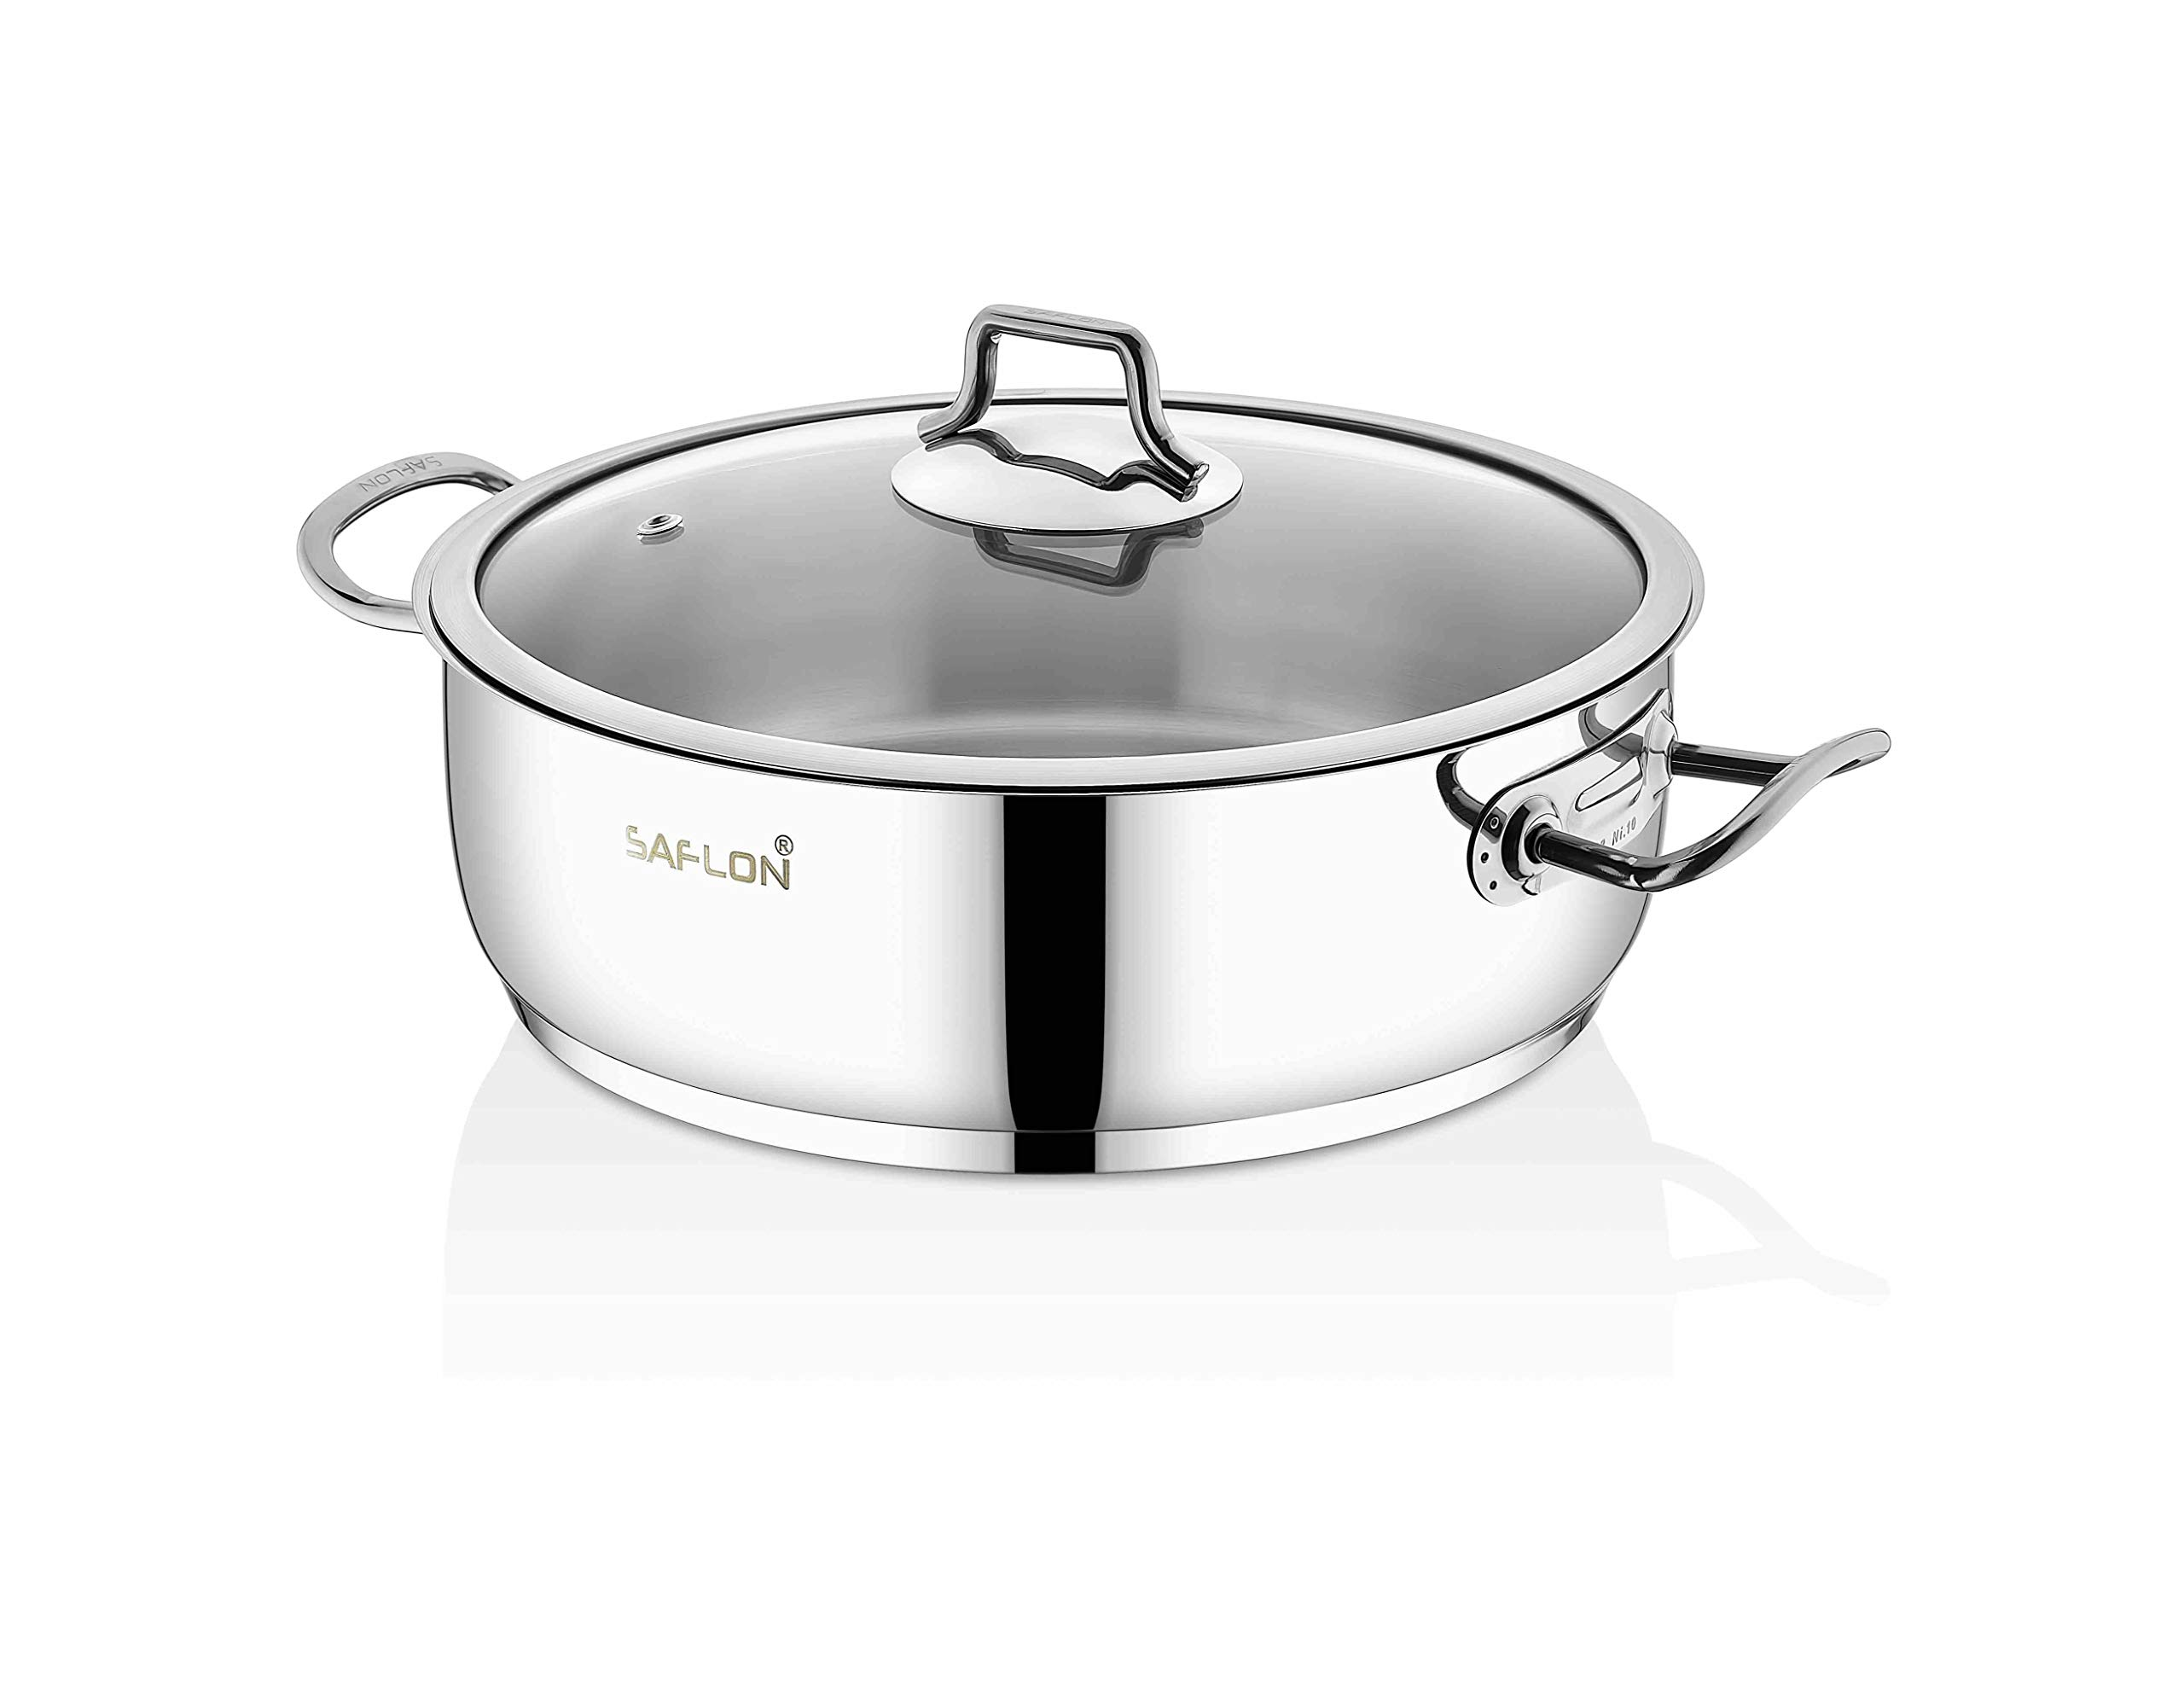 Saflon Stainless Steel Tri-Ply Capsulated Bottom 4 Quart Saute Pot with Glass Lid, Induction Ready, Oven and Dishwasher Safe